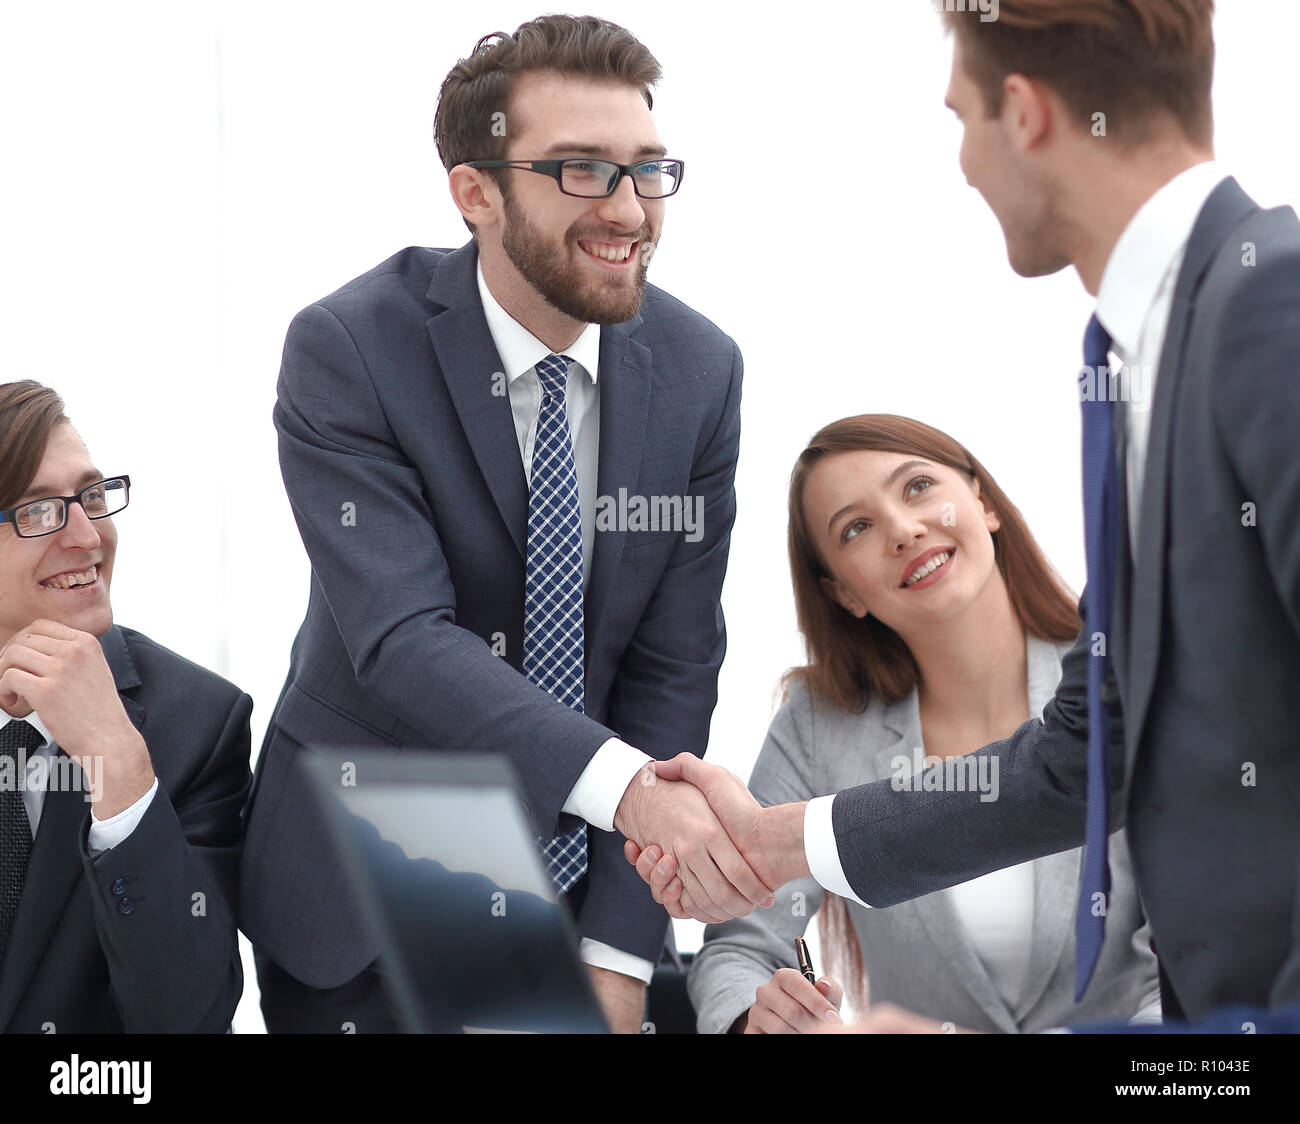 businessman welcoming the business partner - Stock Image